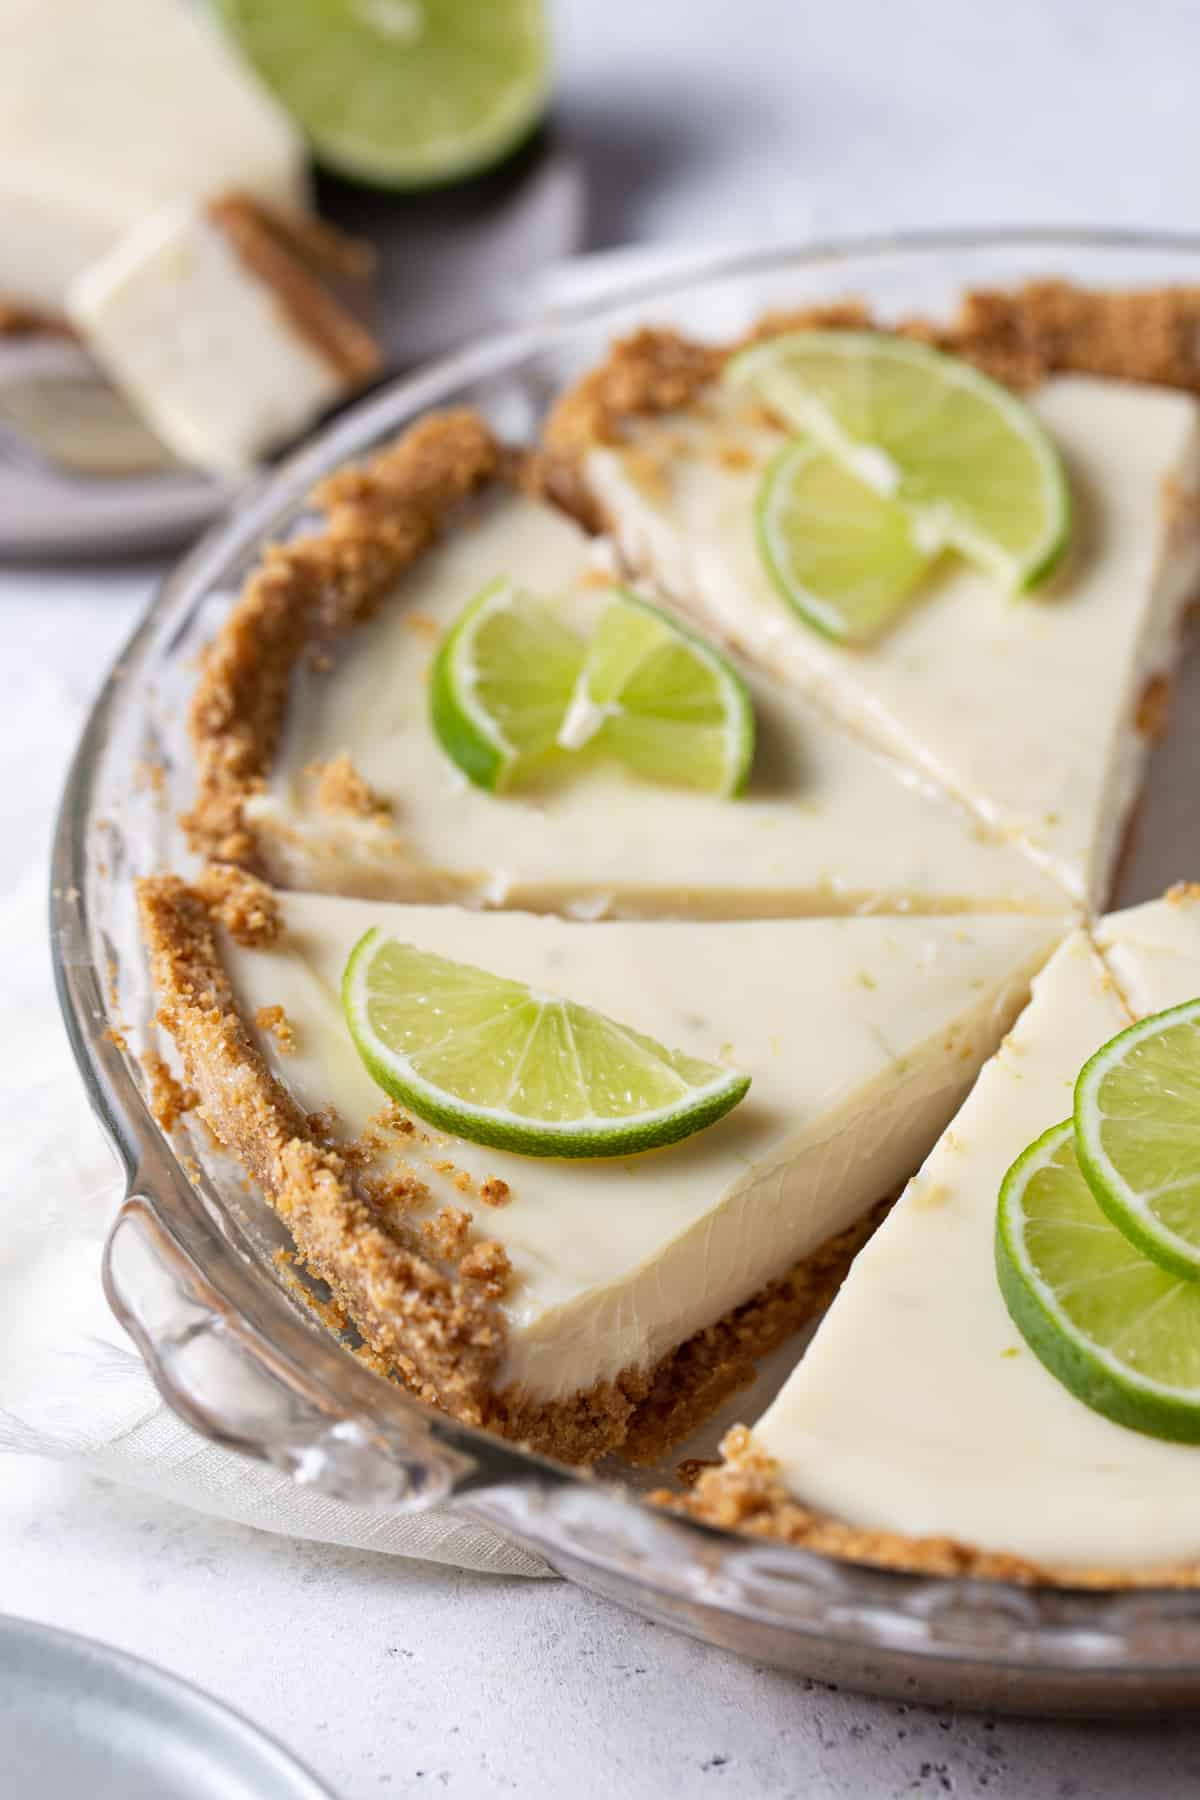 slices of pie in baking dish with lemon wheels.